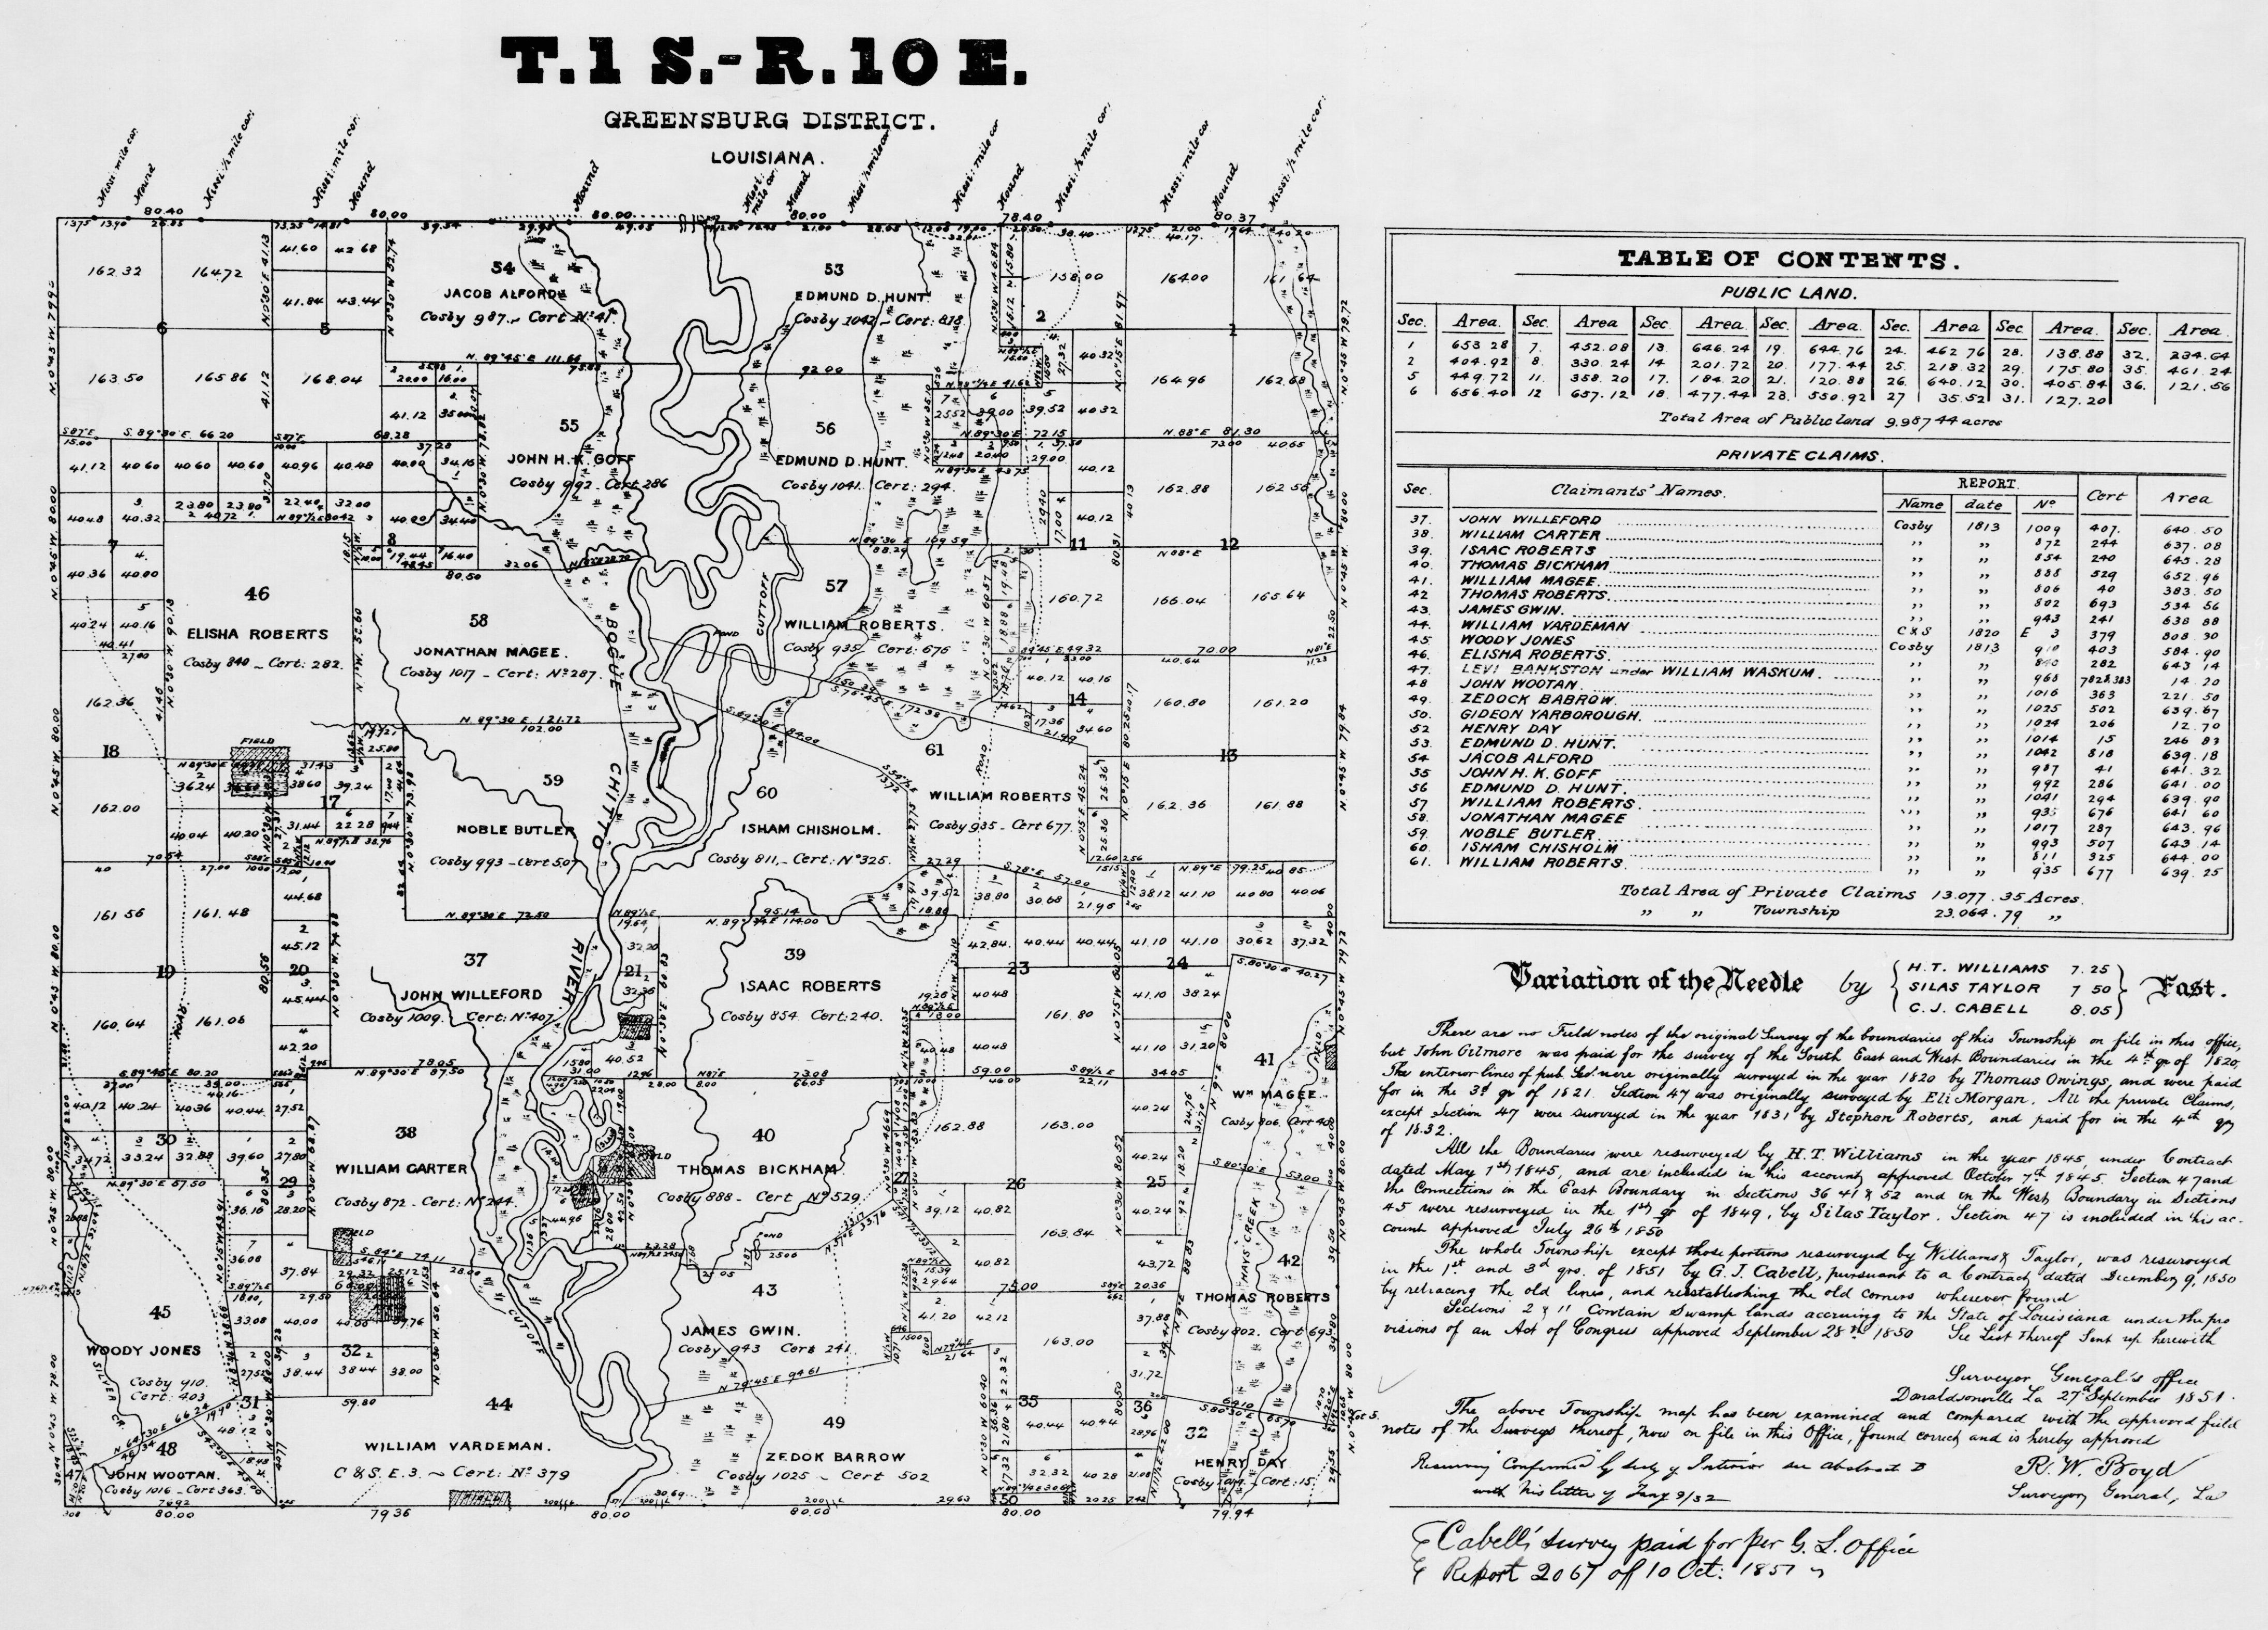 Ownership Map of T1S R10E St Tammany in 1813